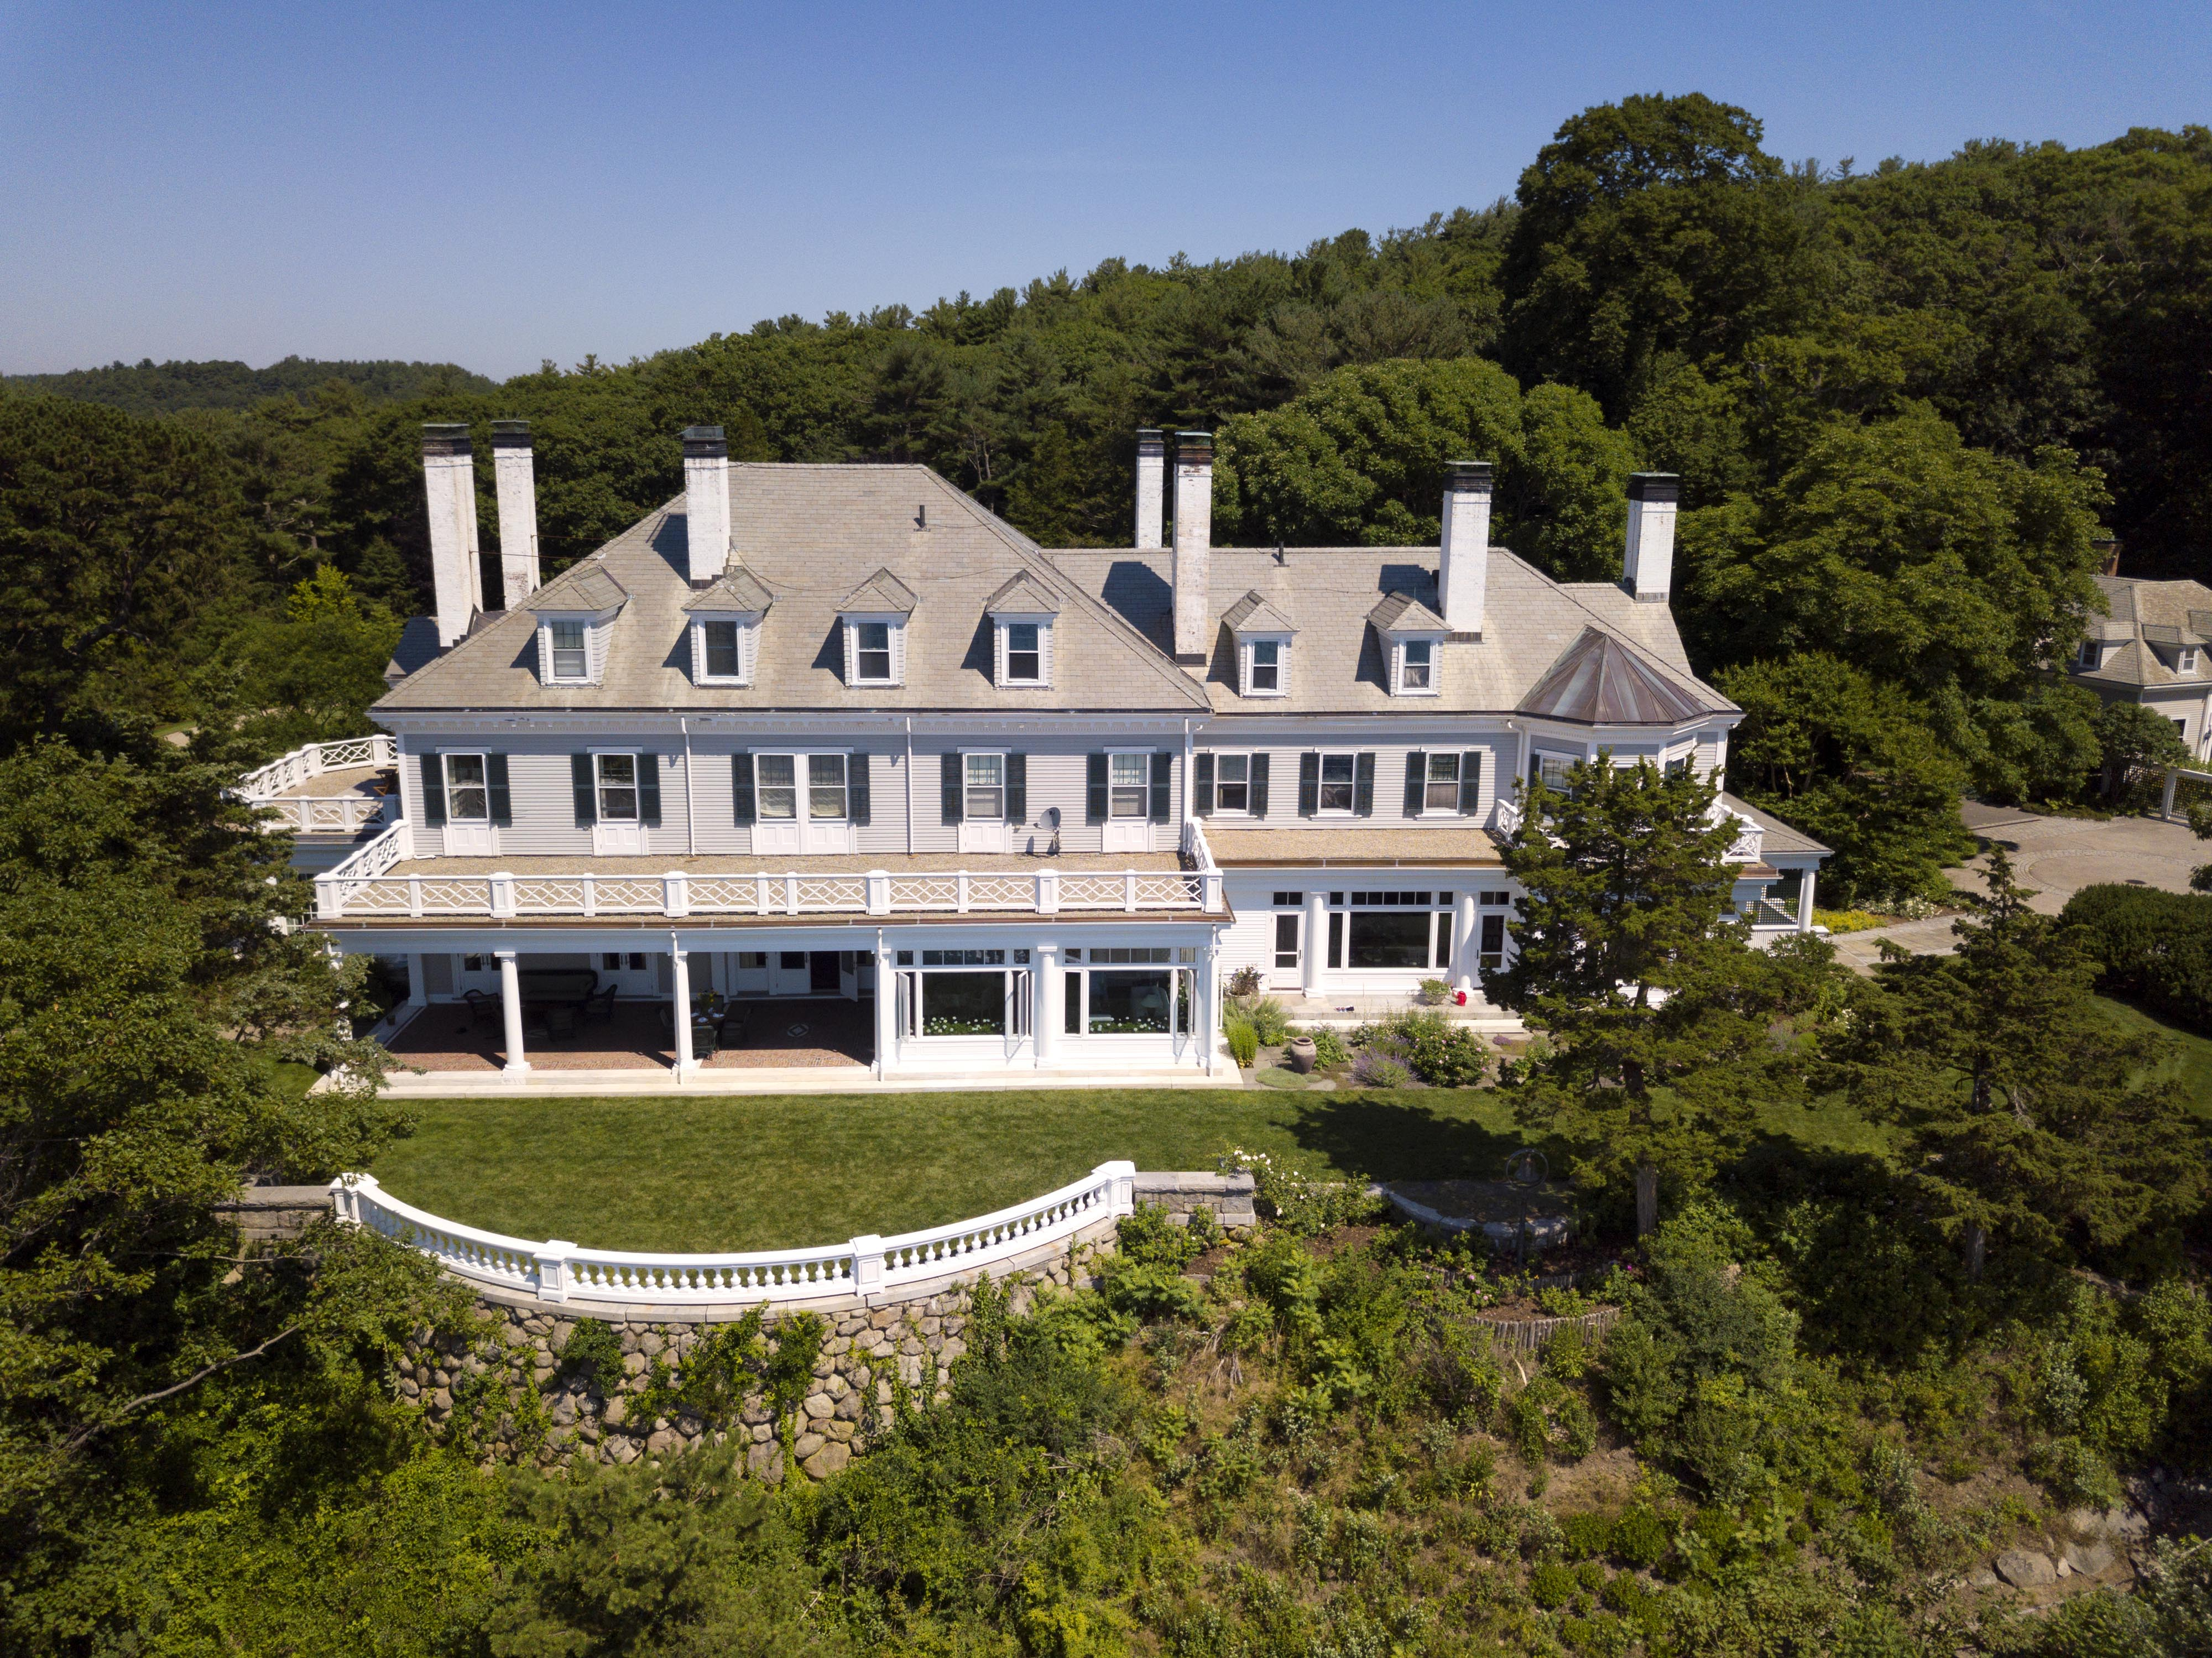 A 22-room Manchester-by-the-Sea property listed for $24 million